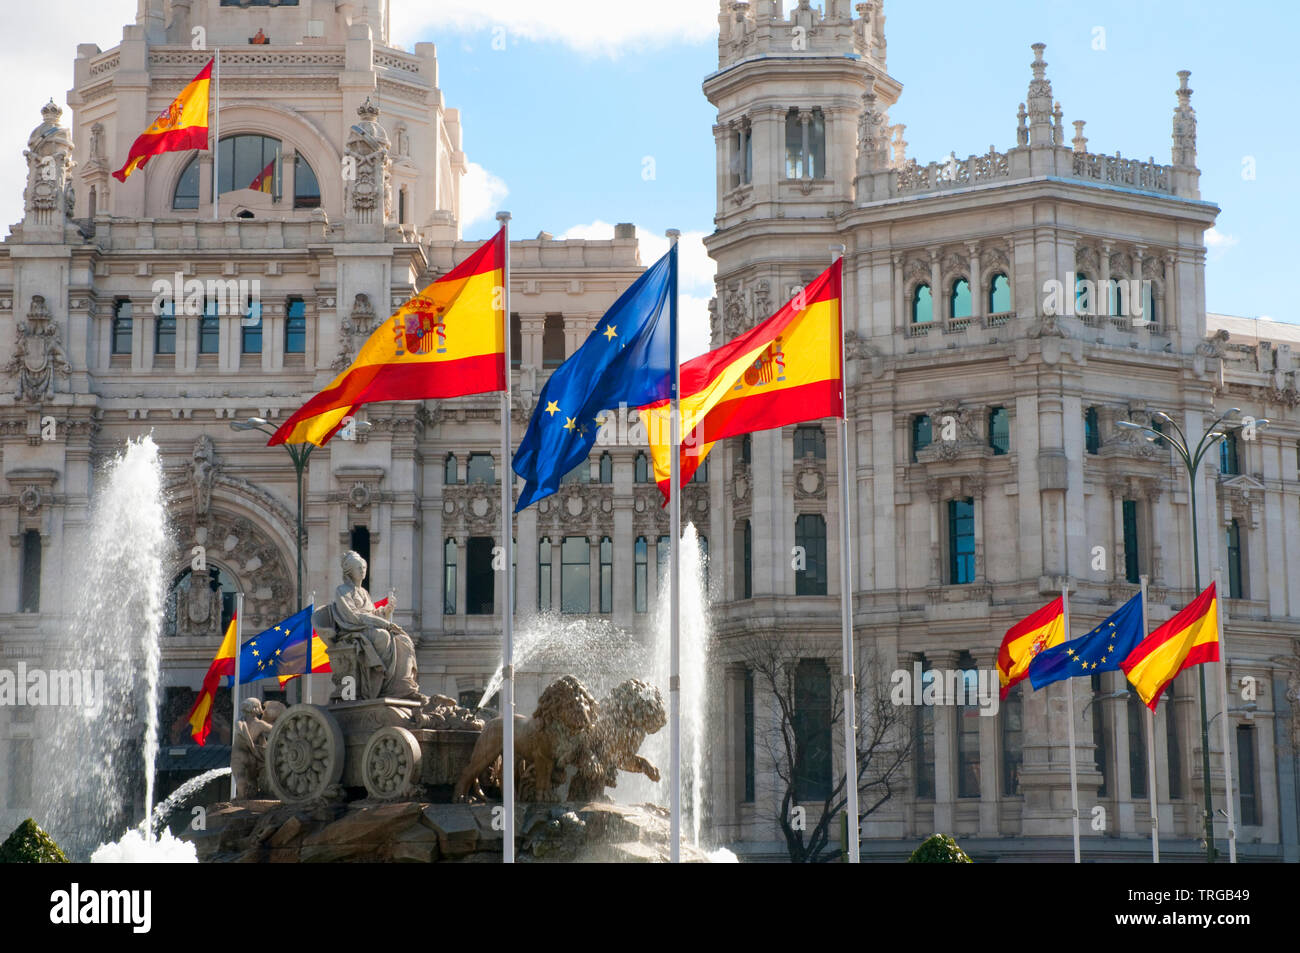 Cibeles fountain with European and Spanish flags commemorating the Spanish Presidency of European Union. Madrid, Spain. - Stock Image